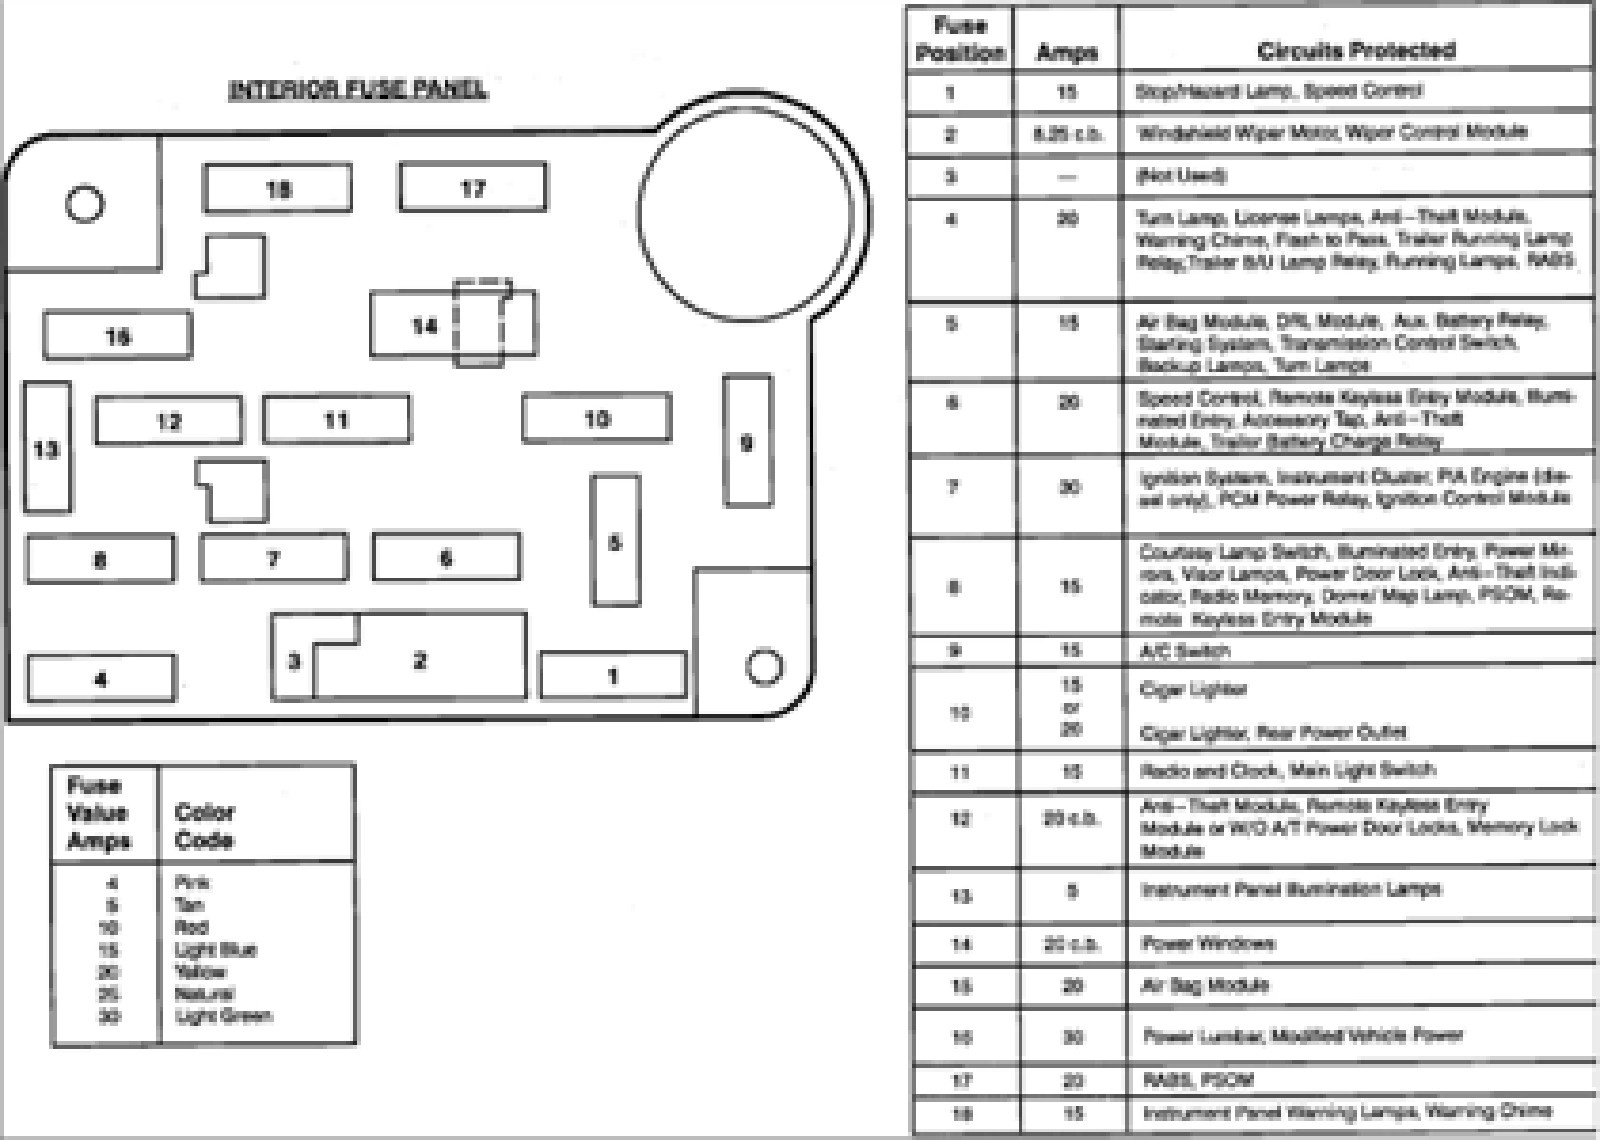 Truck Wiring Diagram Additionally Hyundai Sonata Radio Wiring Diagram